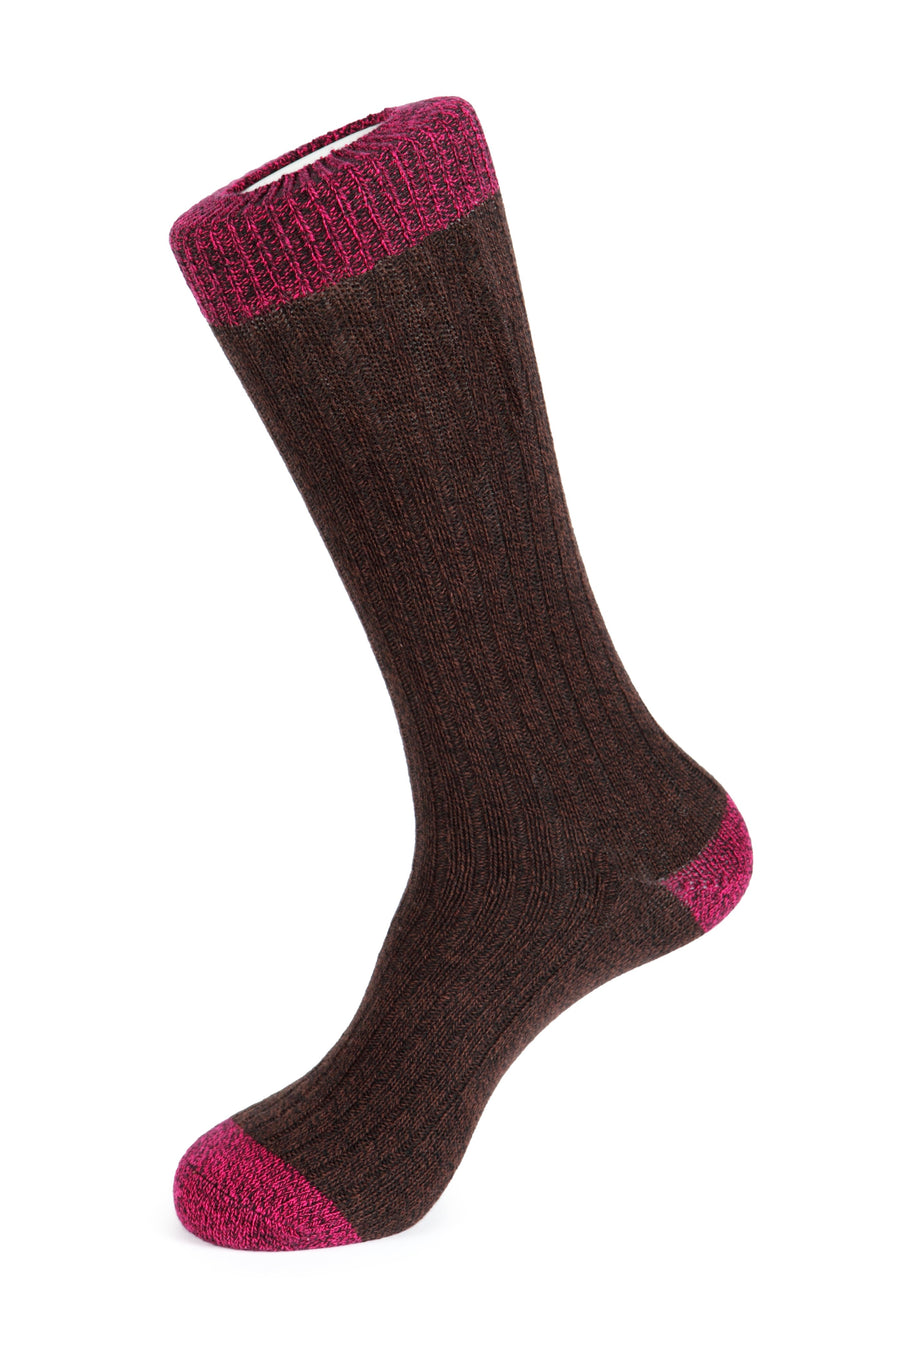 Two Tone Boot Socks